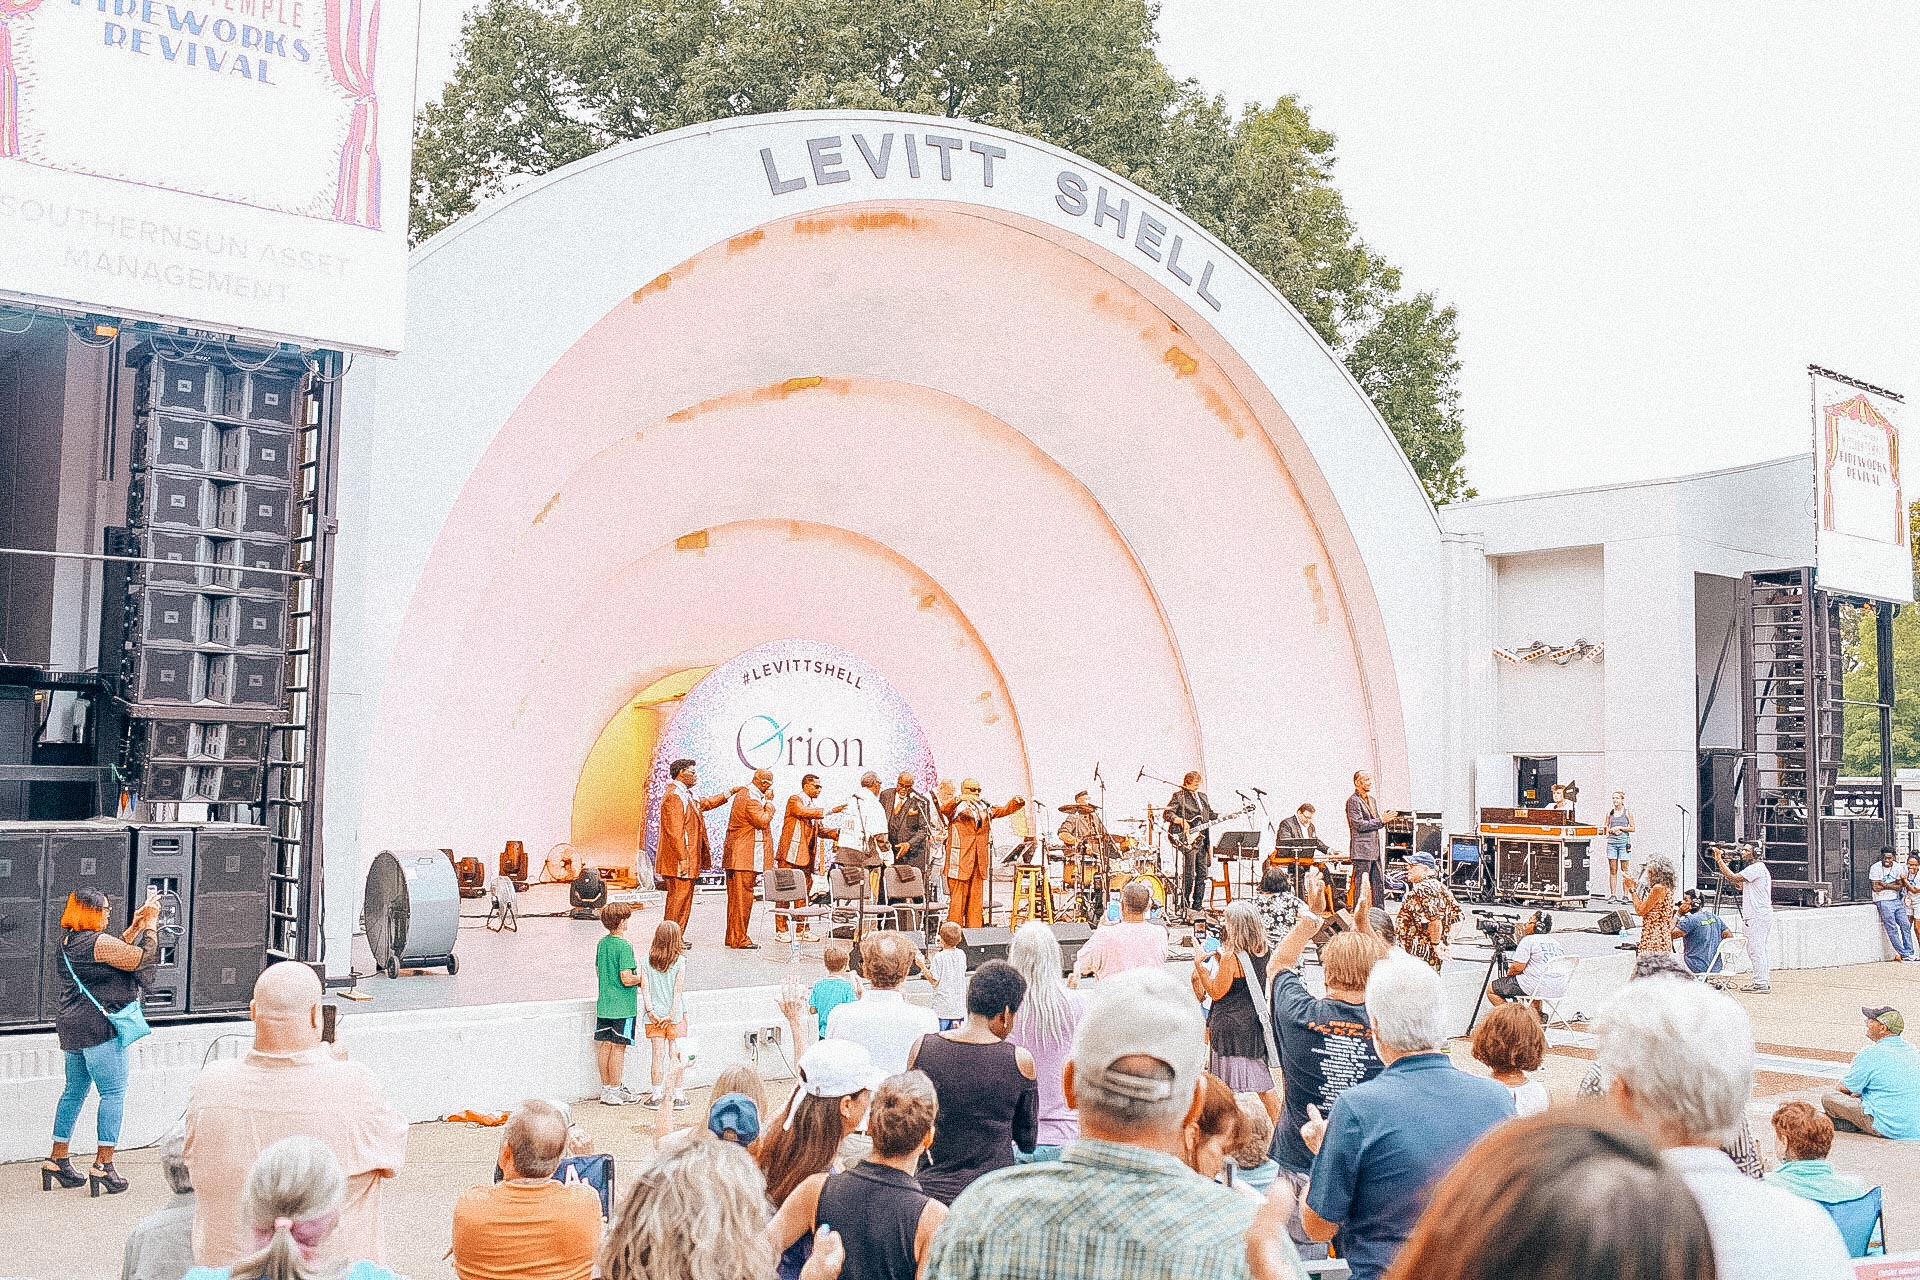 The Levitt Shell Memphis / Oui We